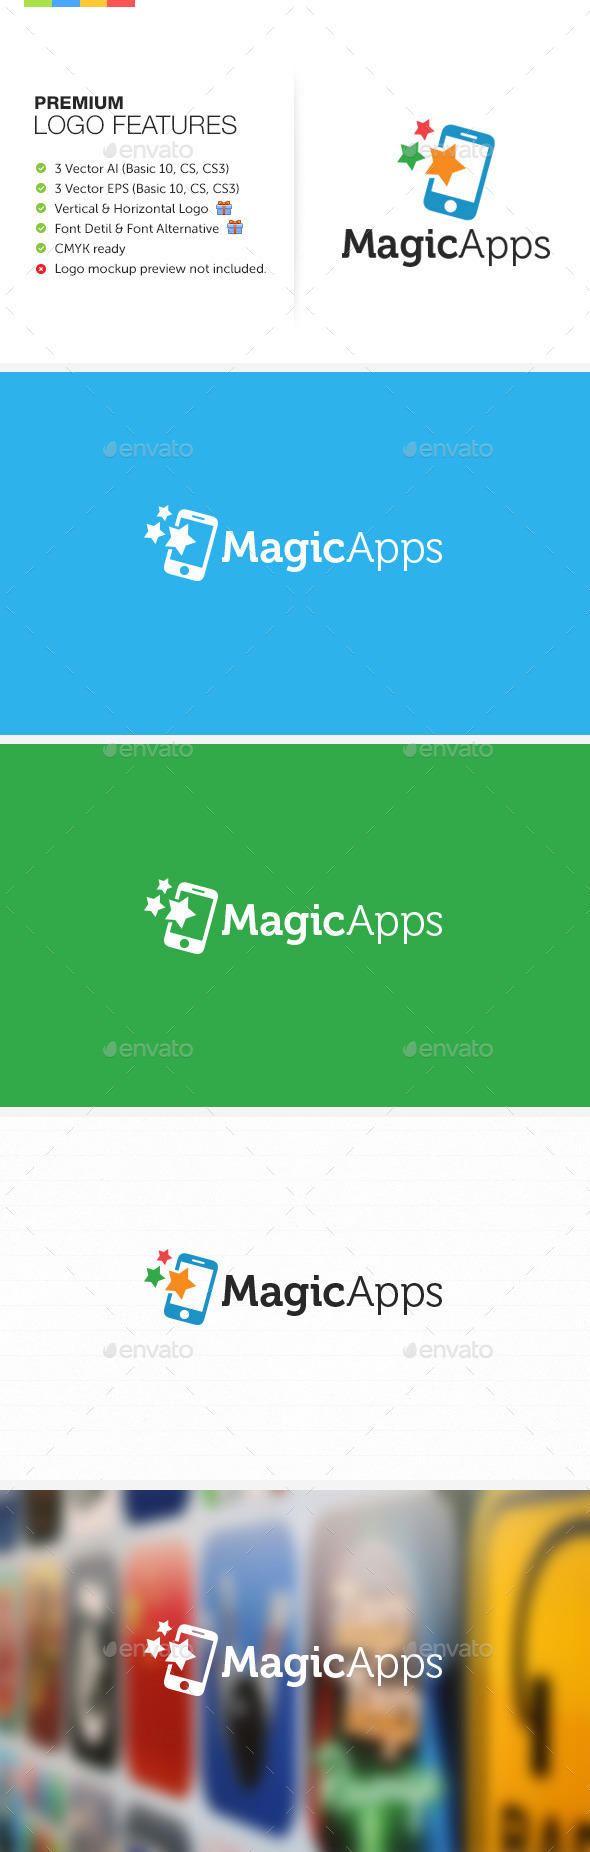 Magic Apps Logo - Symbols Logo Templates